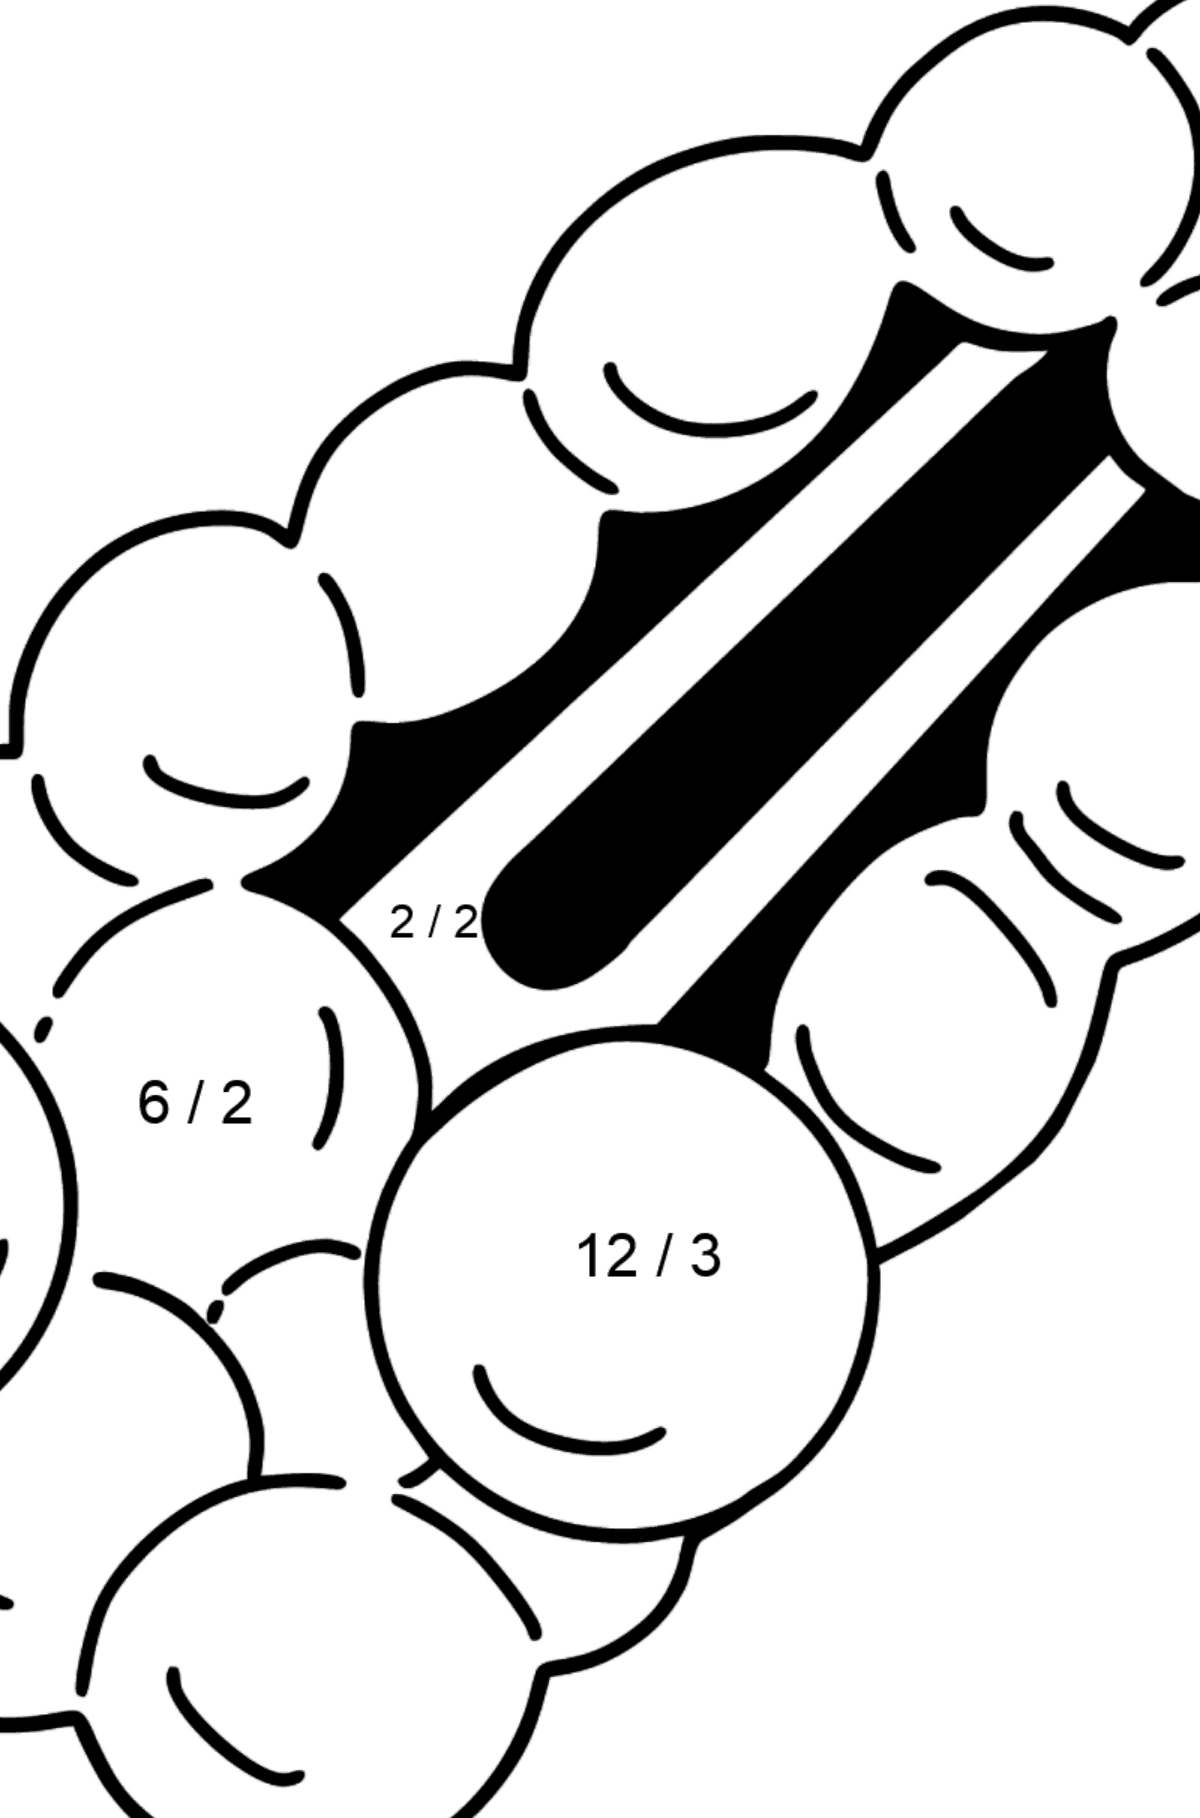 Barrette coloring page - Math Coloring - Division for Kids